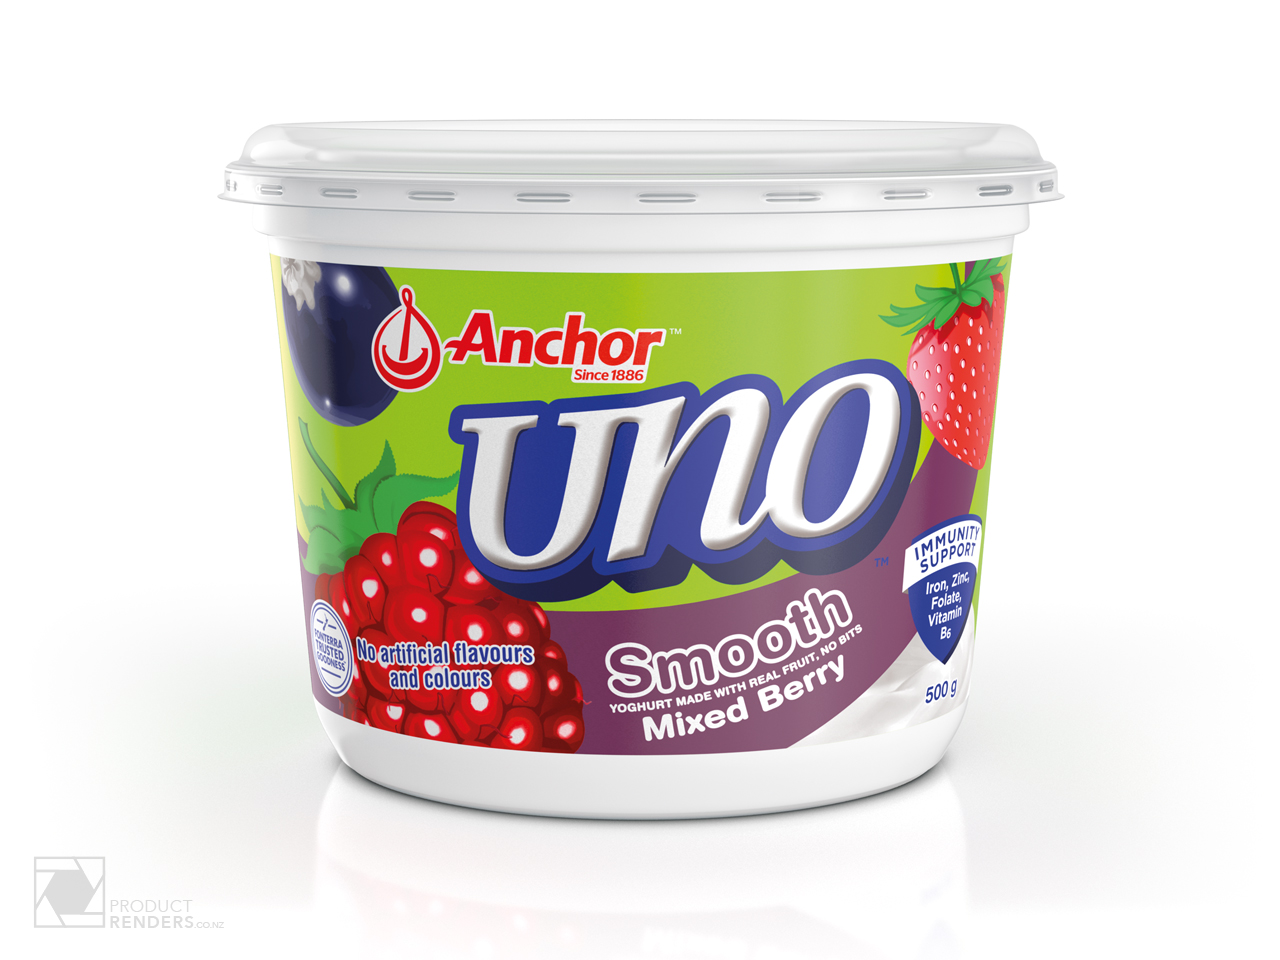 3D render of an Anchor Uno Mixed Berry yoghurt tub packaging.